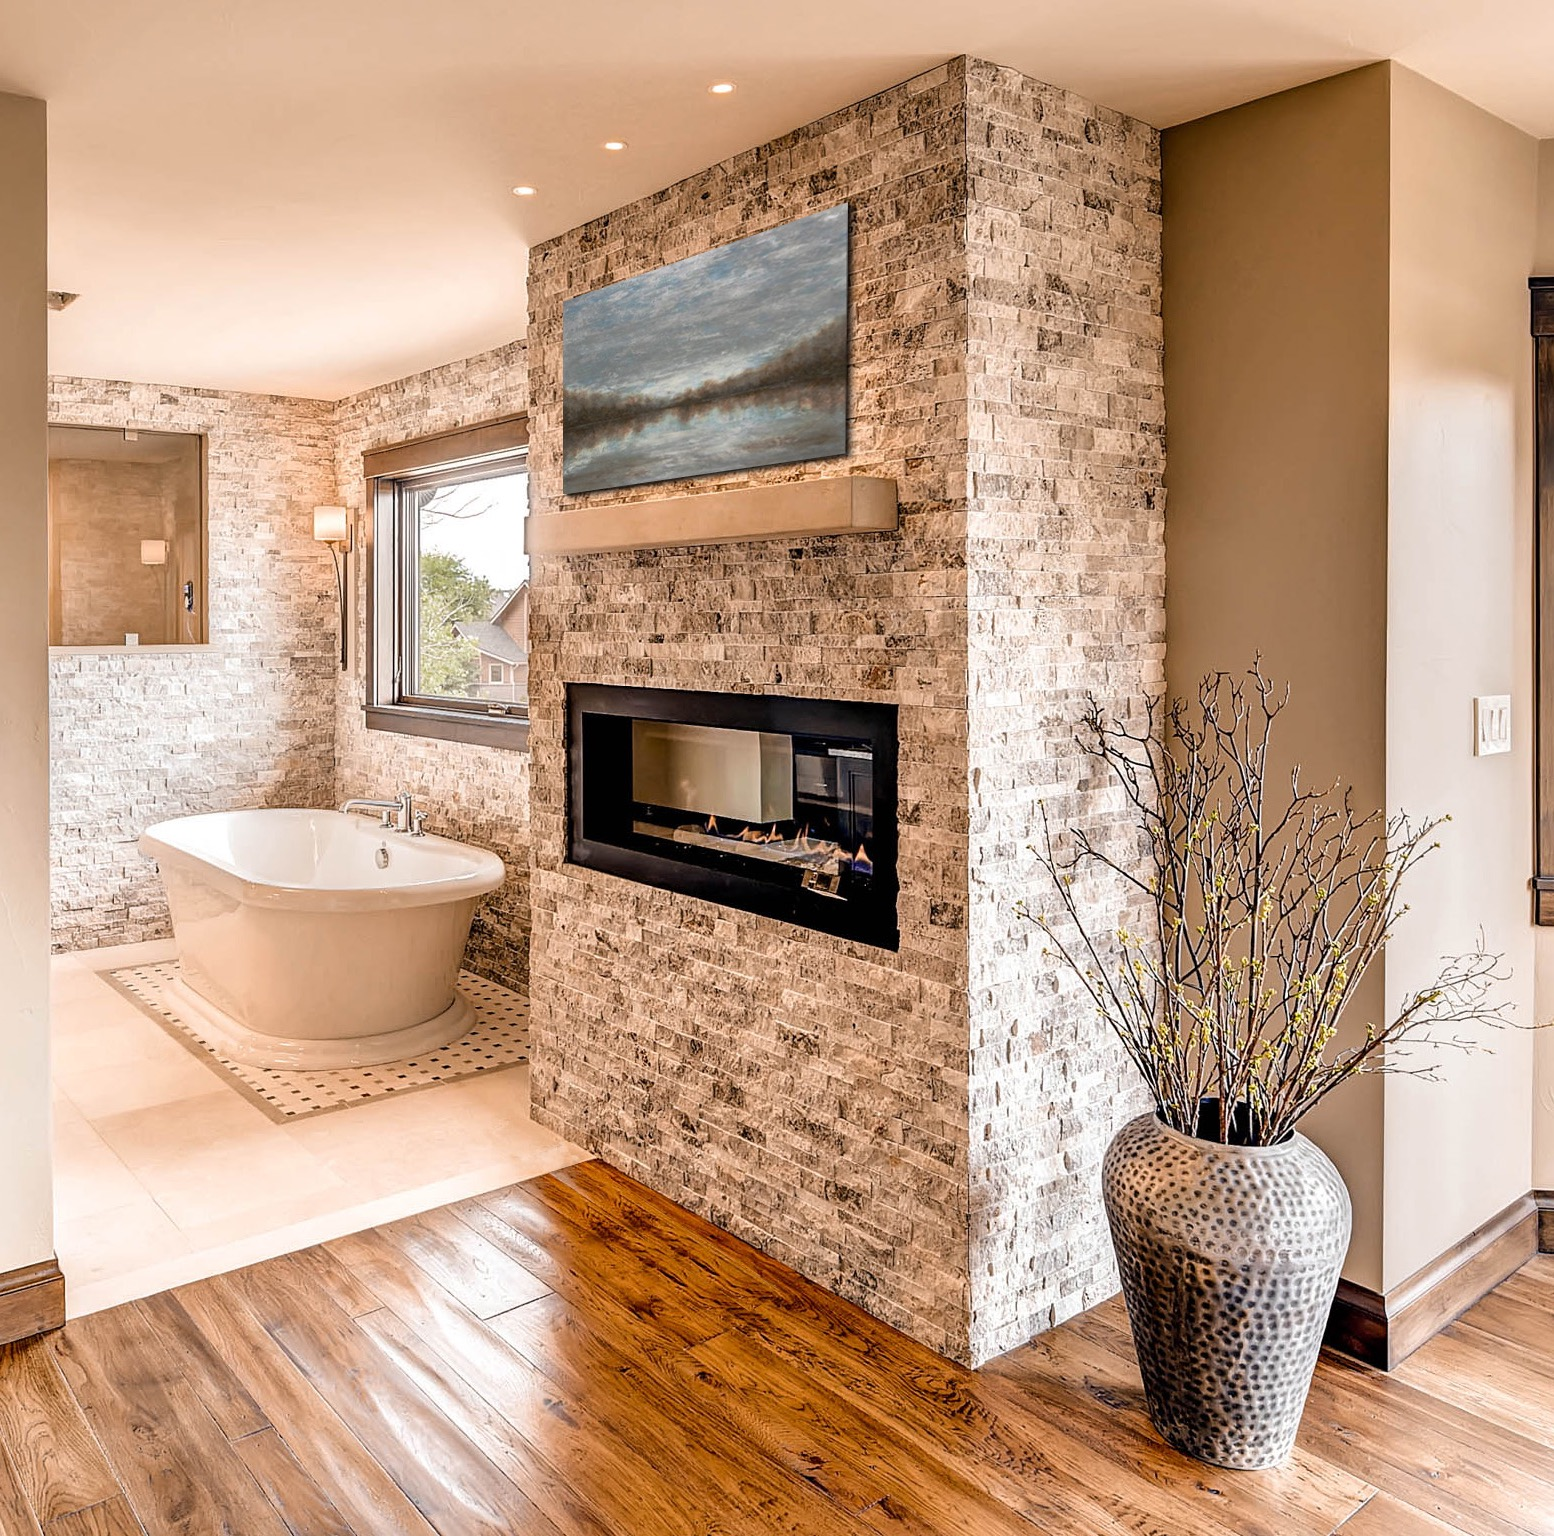 Modern Rustic Bathroom With Stone Wall Decoration (Image 12 of 18)